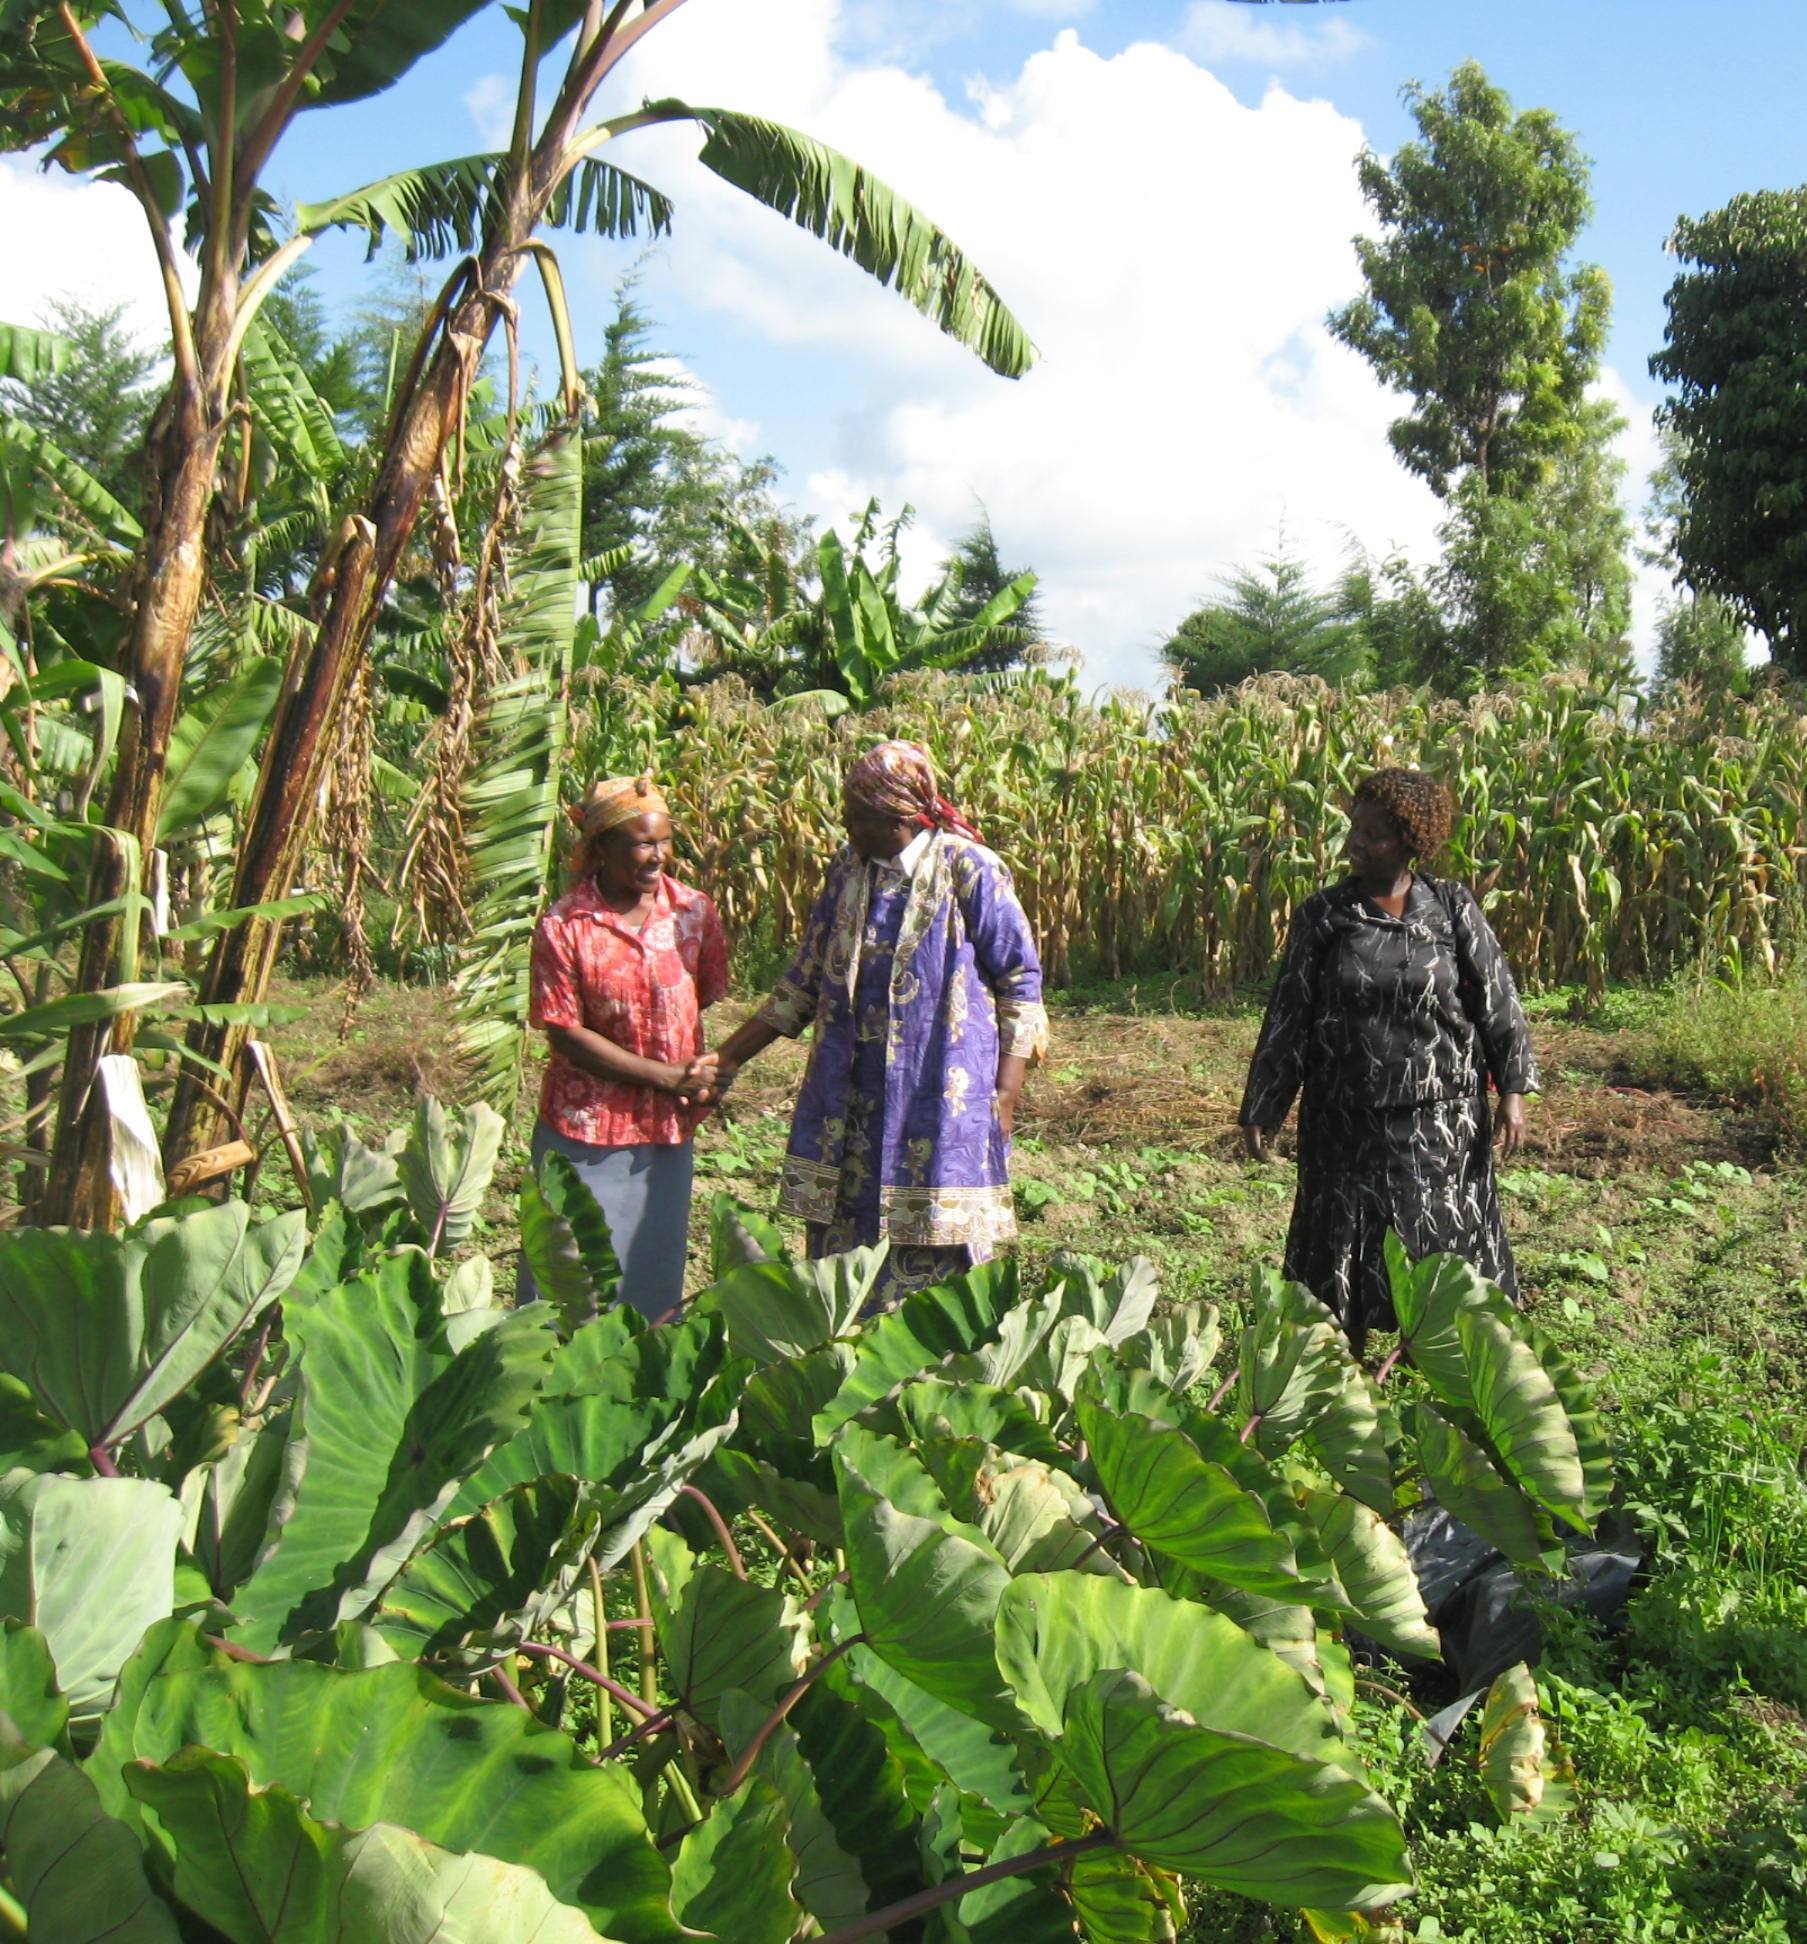 Mrs. Njehu (GBM Board Member) visiting GBM project site on Food Security in Nyeri County